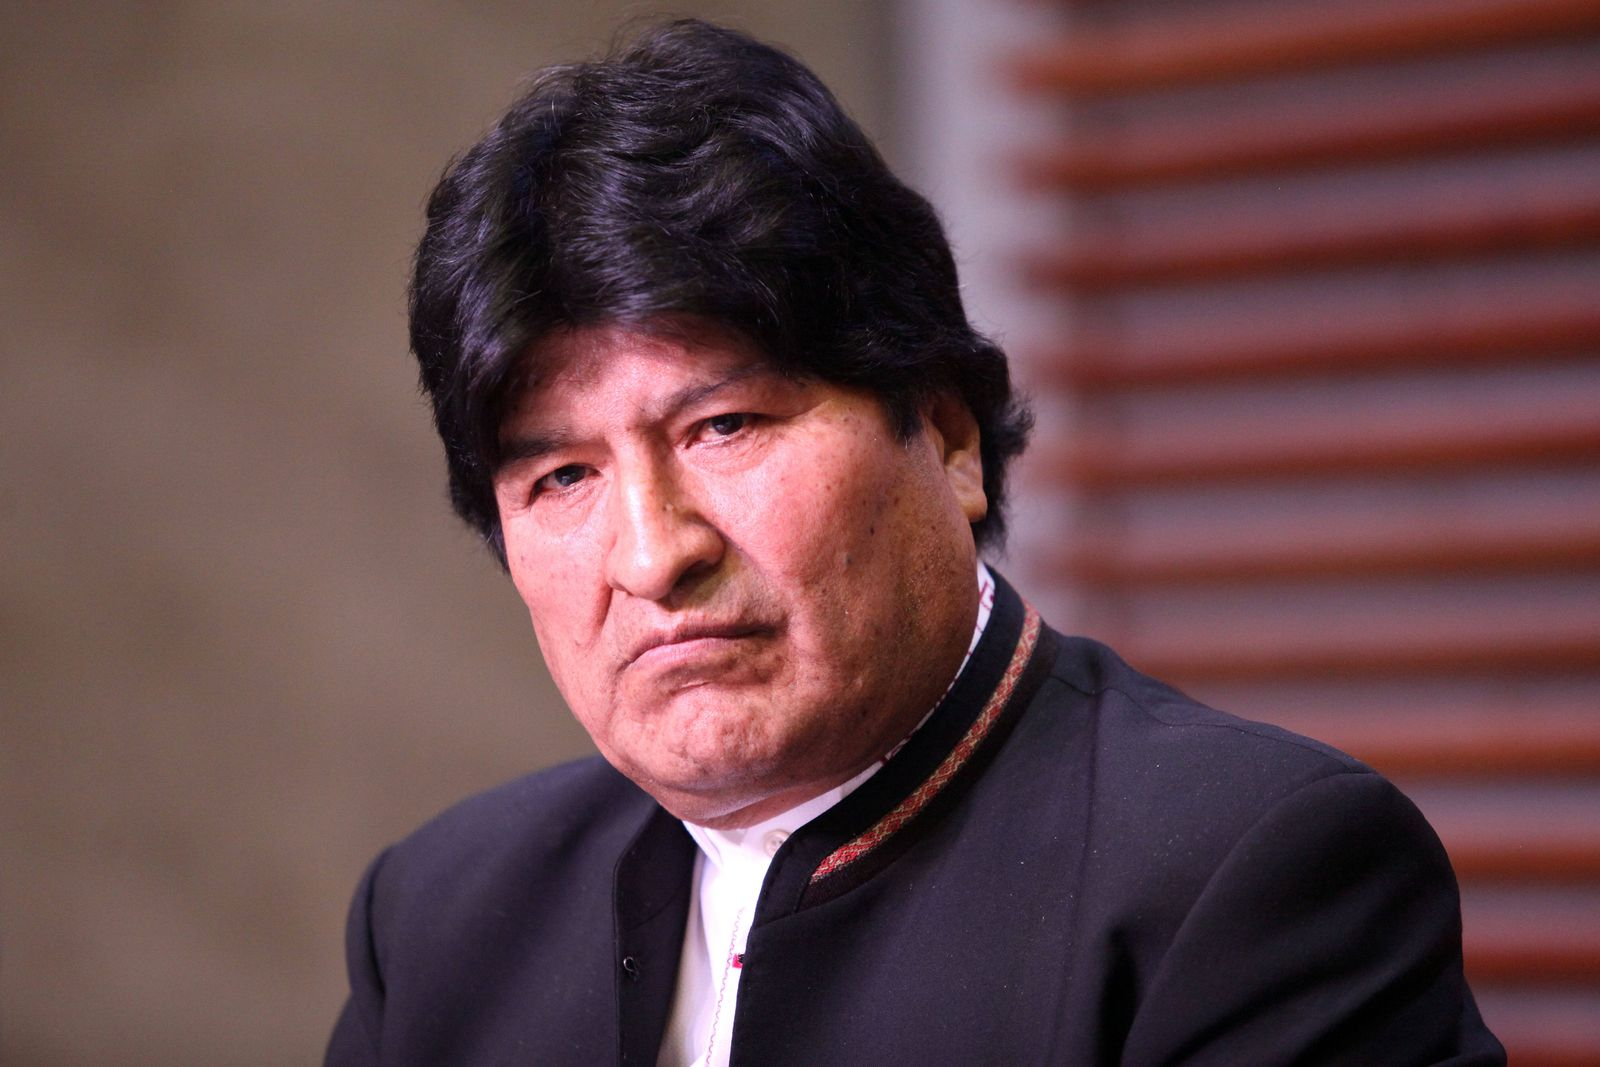 February 21, 2020, Buenos Aires, Buenos Aires, Argentina: Former Bolivian President Evo Morales gave a press conference